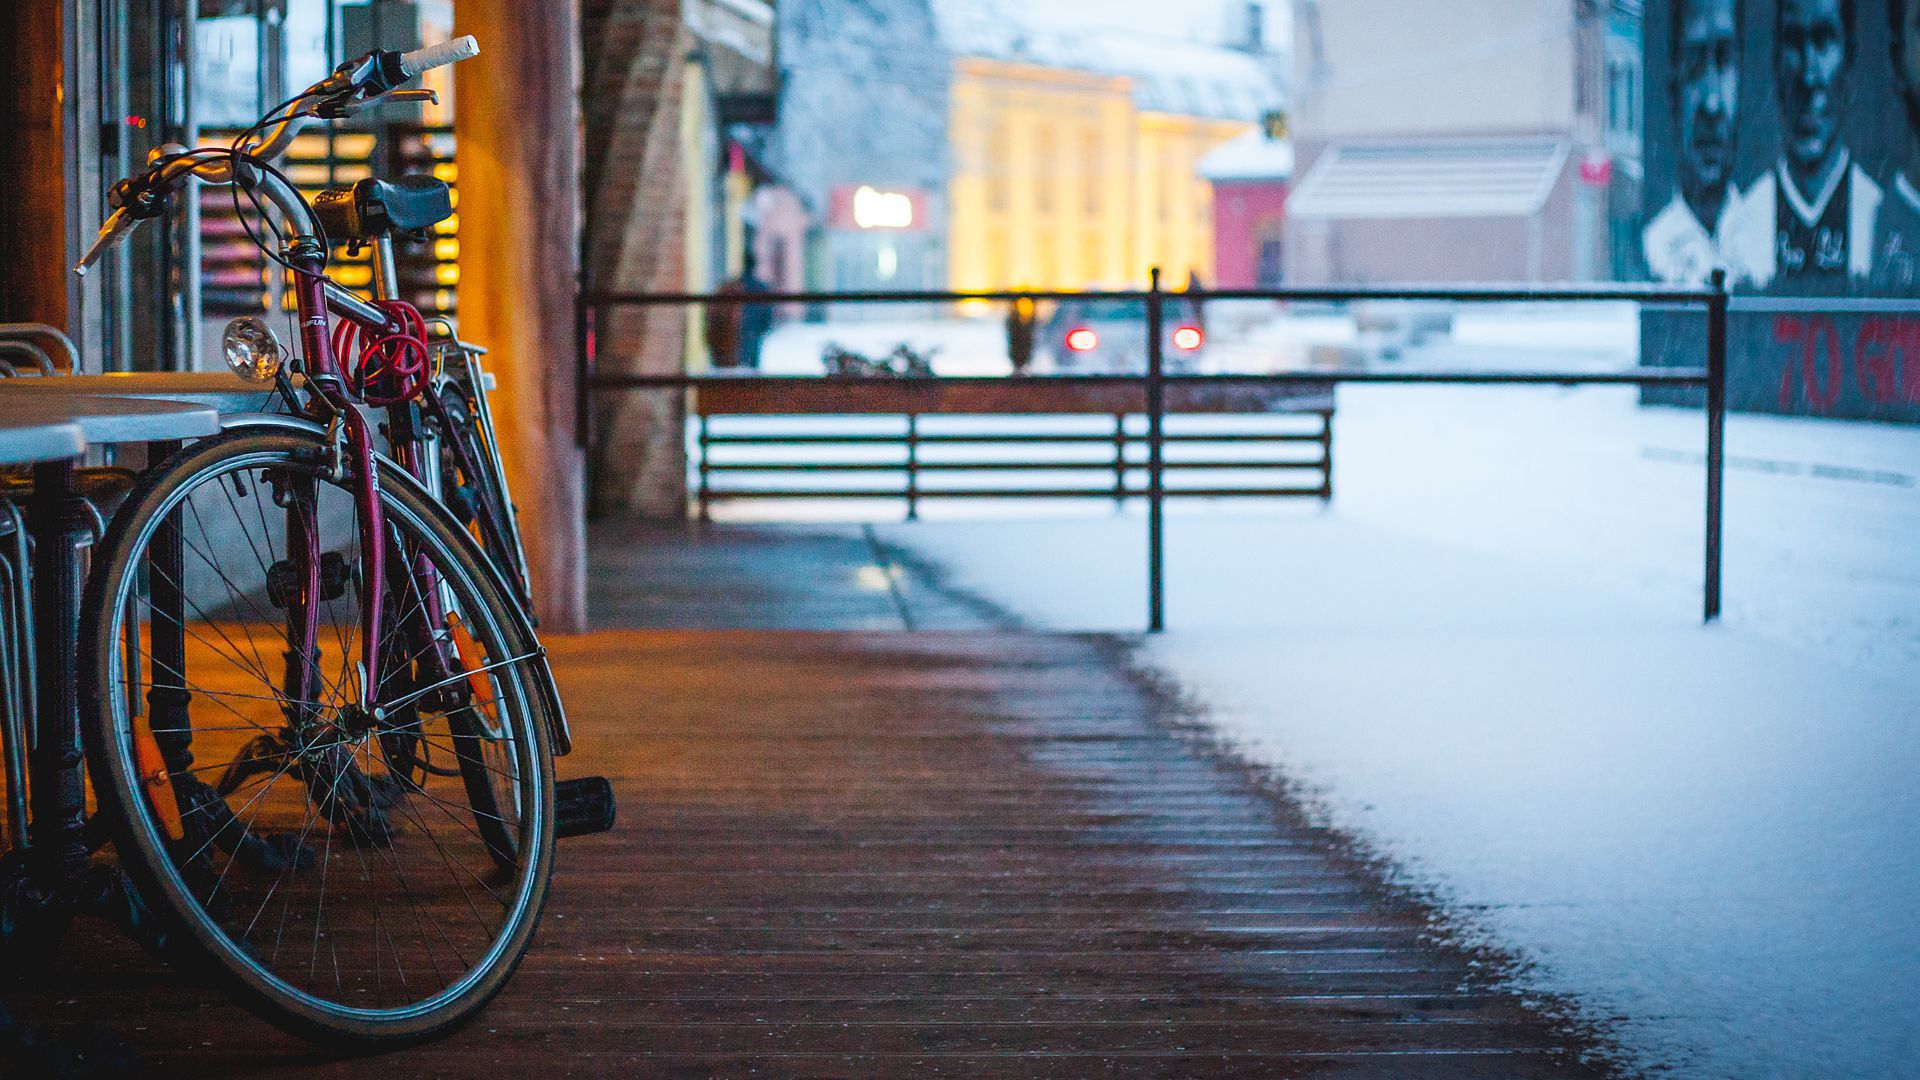 Bicycle Wallpaper For Laptop